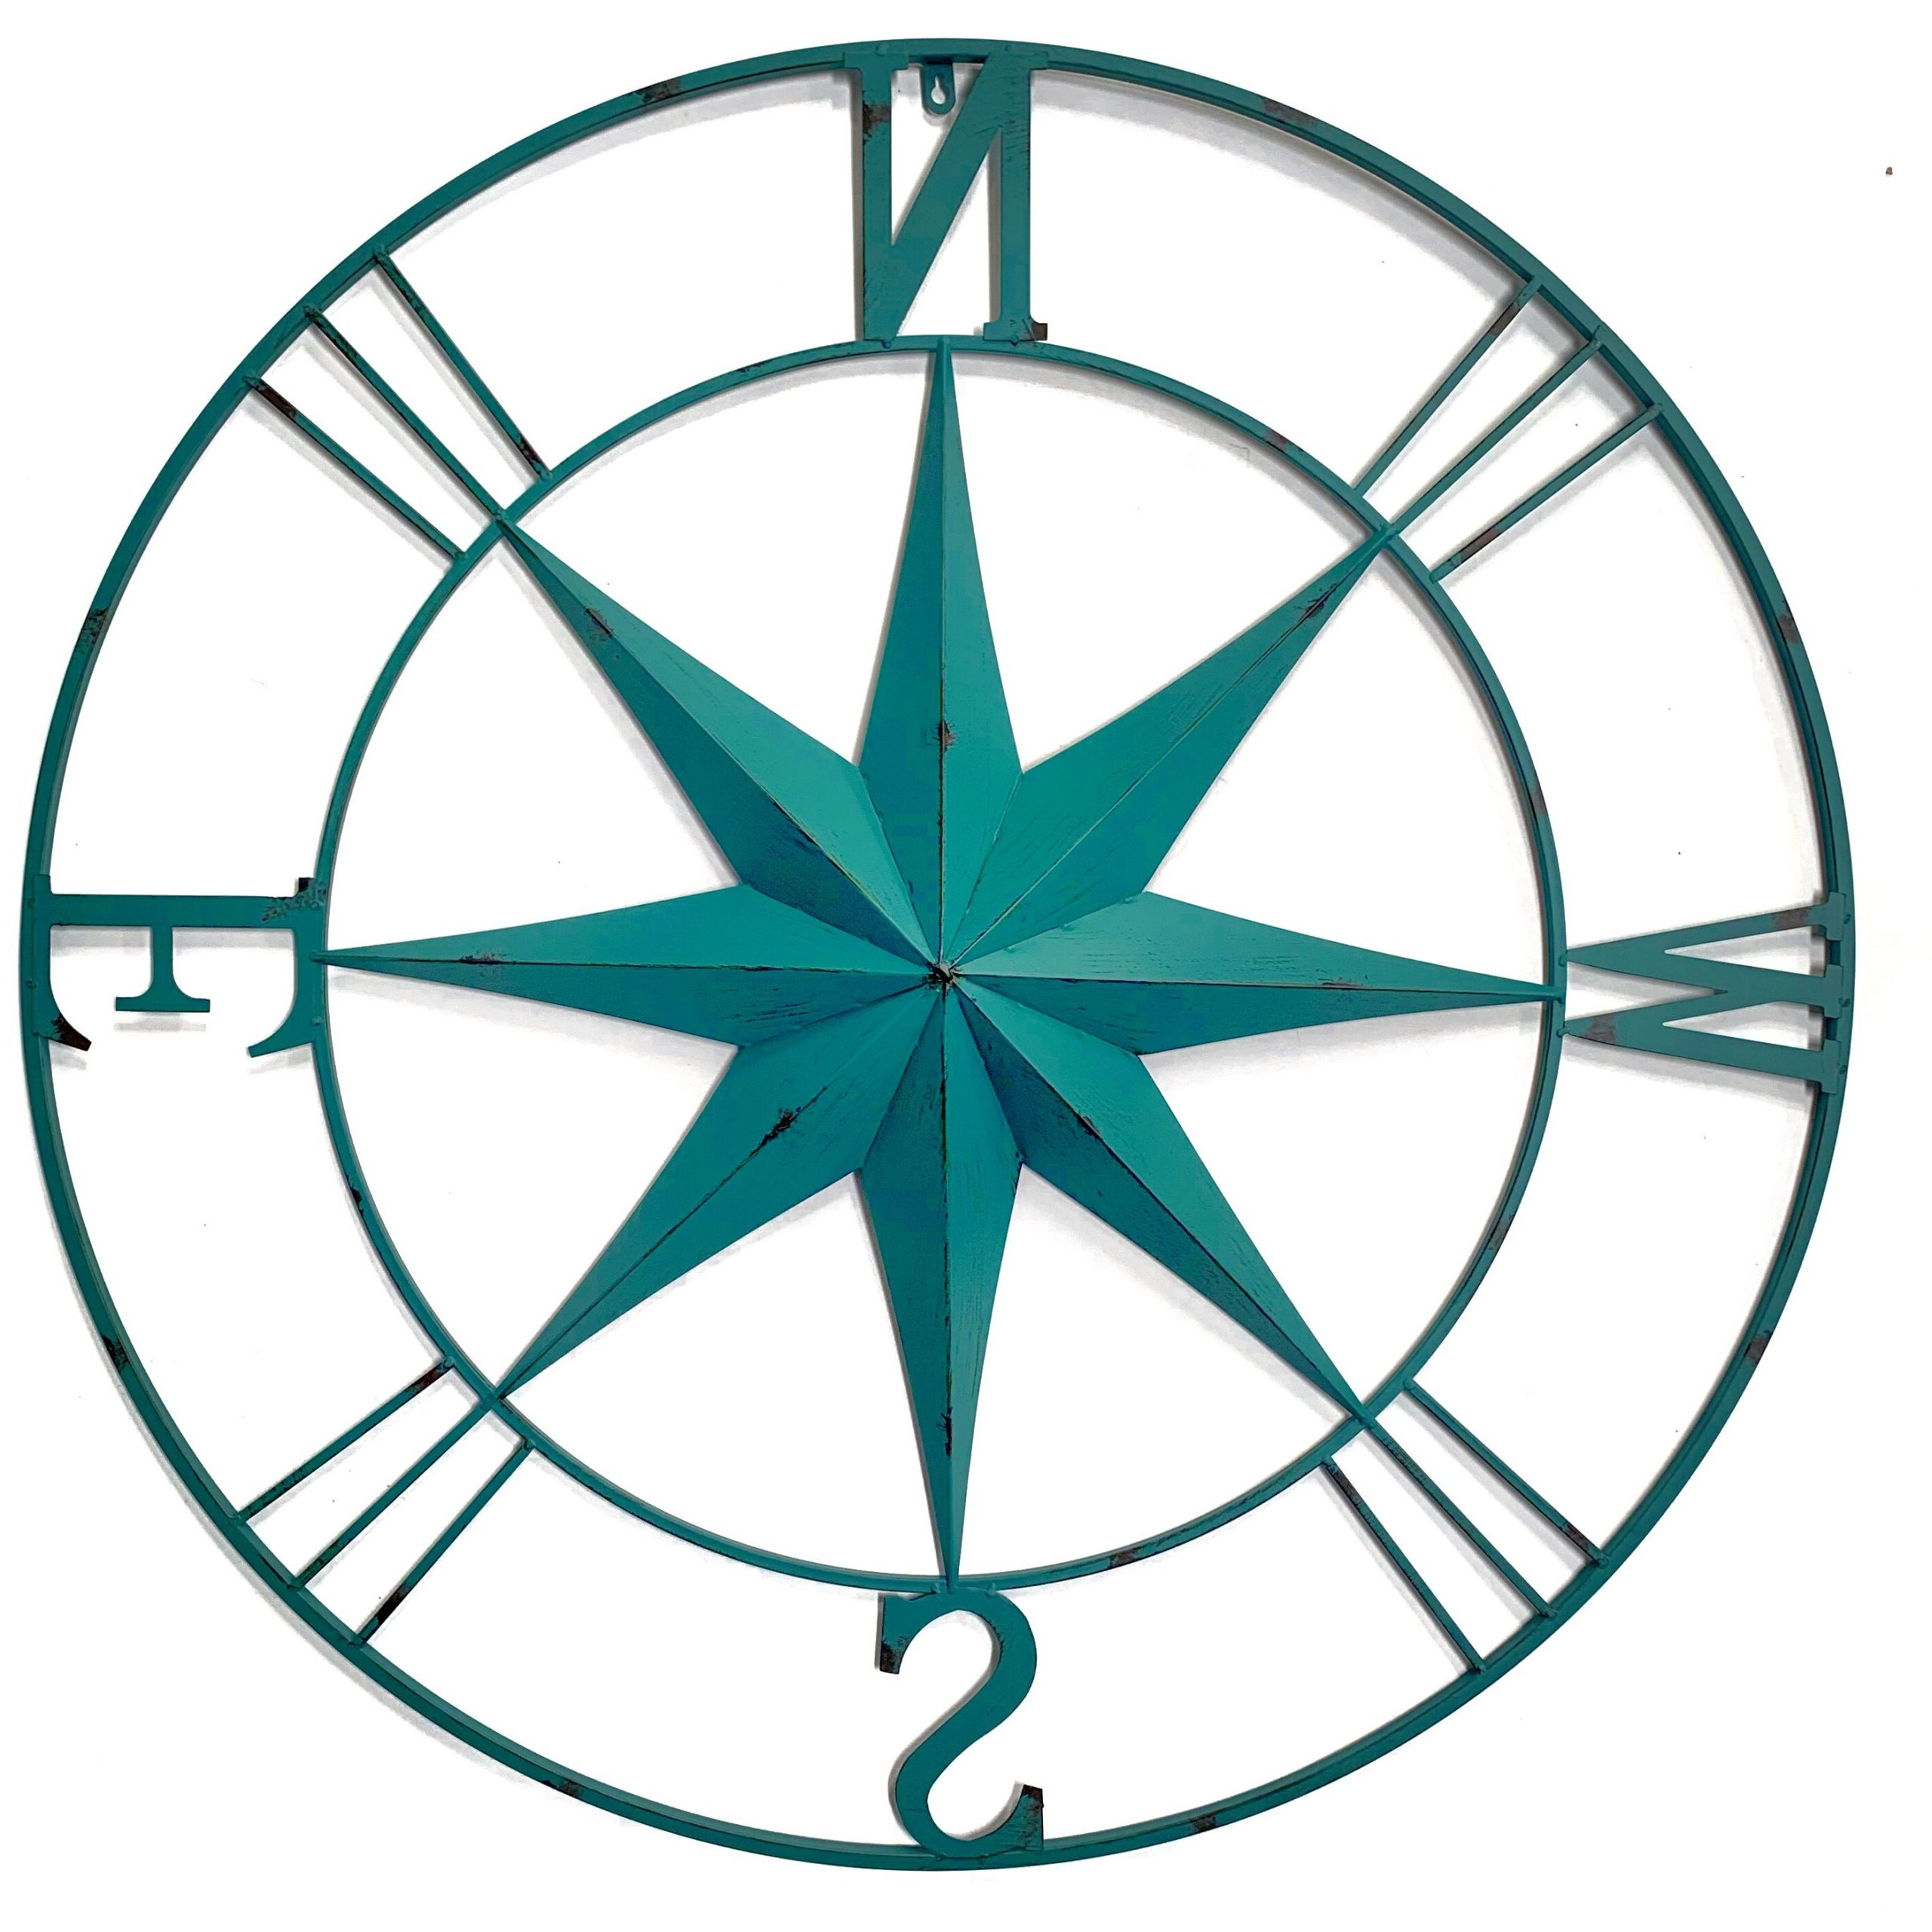 Antique Metal Compass Rose Wall Décor Pertaining To Best And Newest Compass Metal Wall Décor By Beachcrest Home (View 10 of 20)